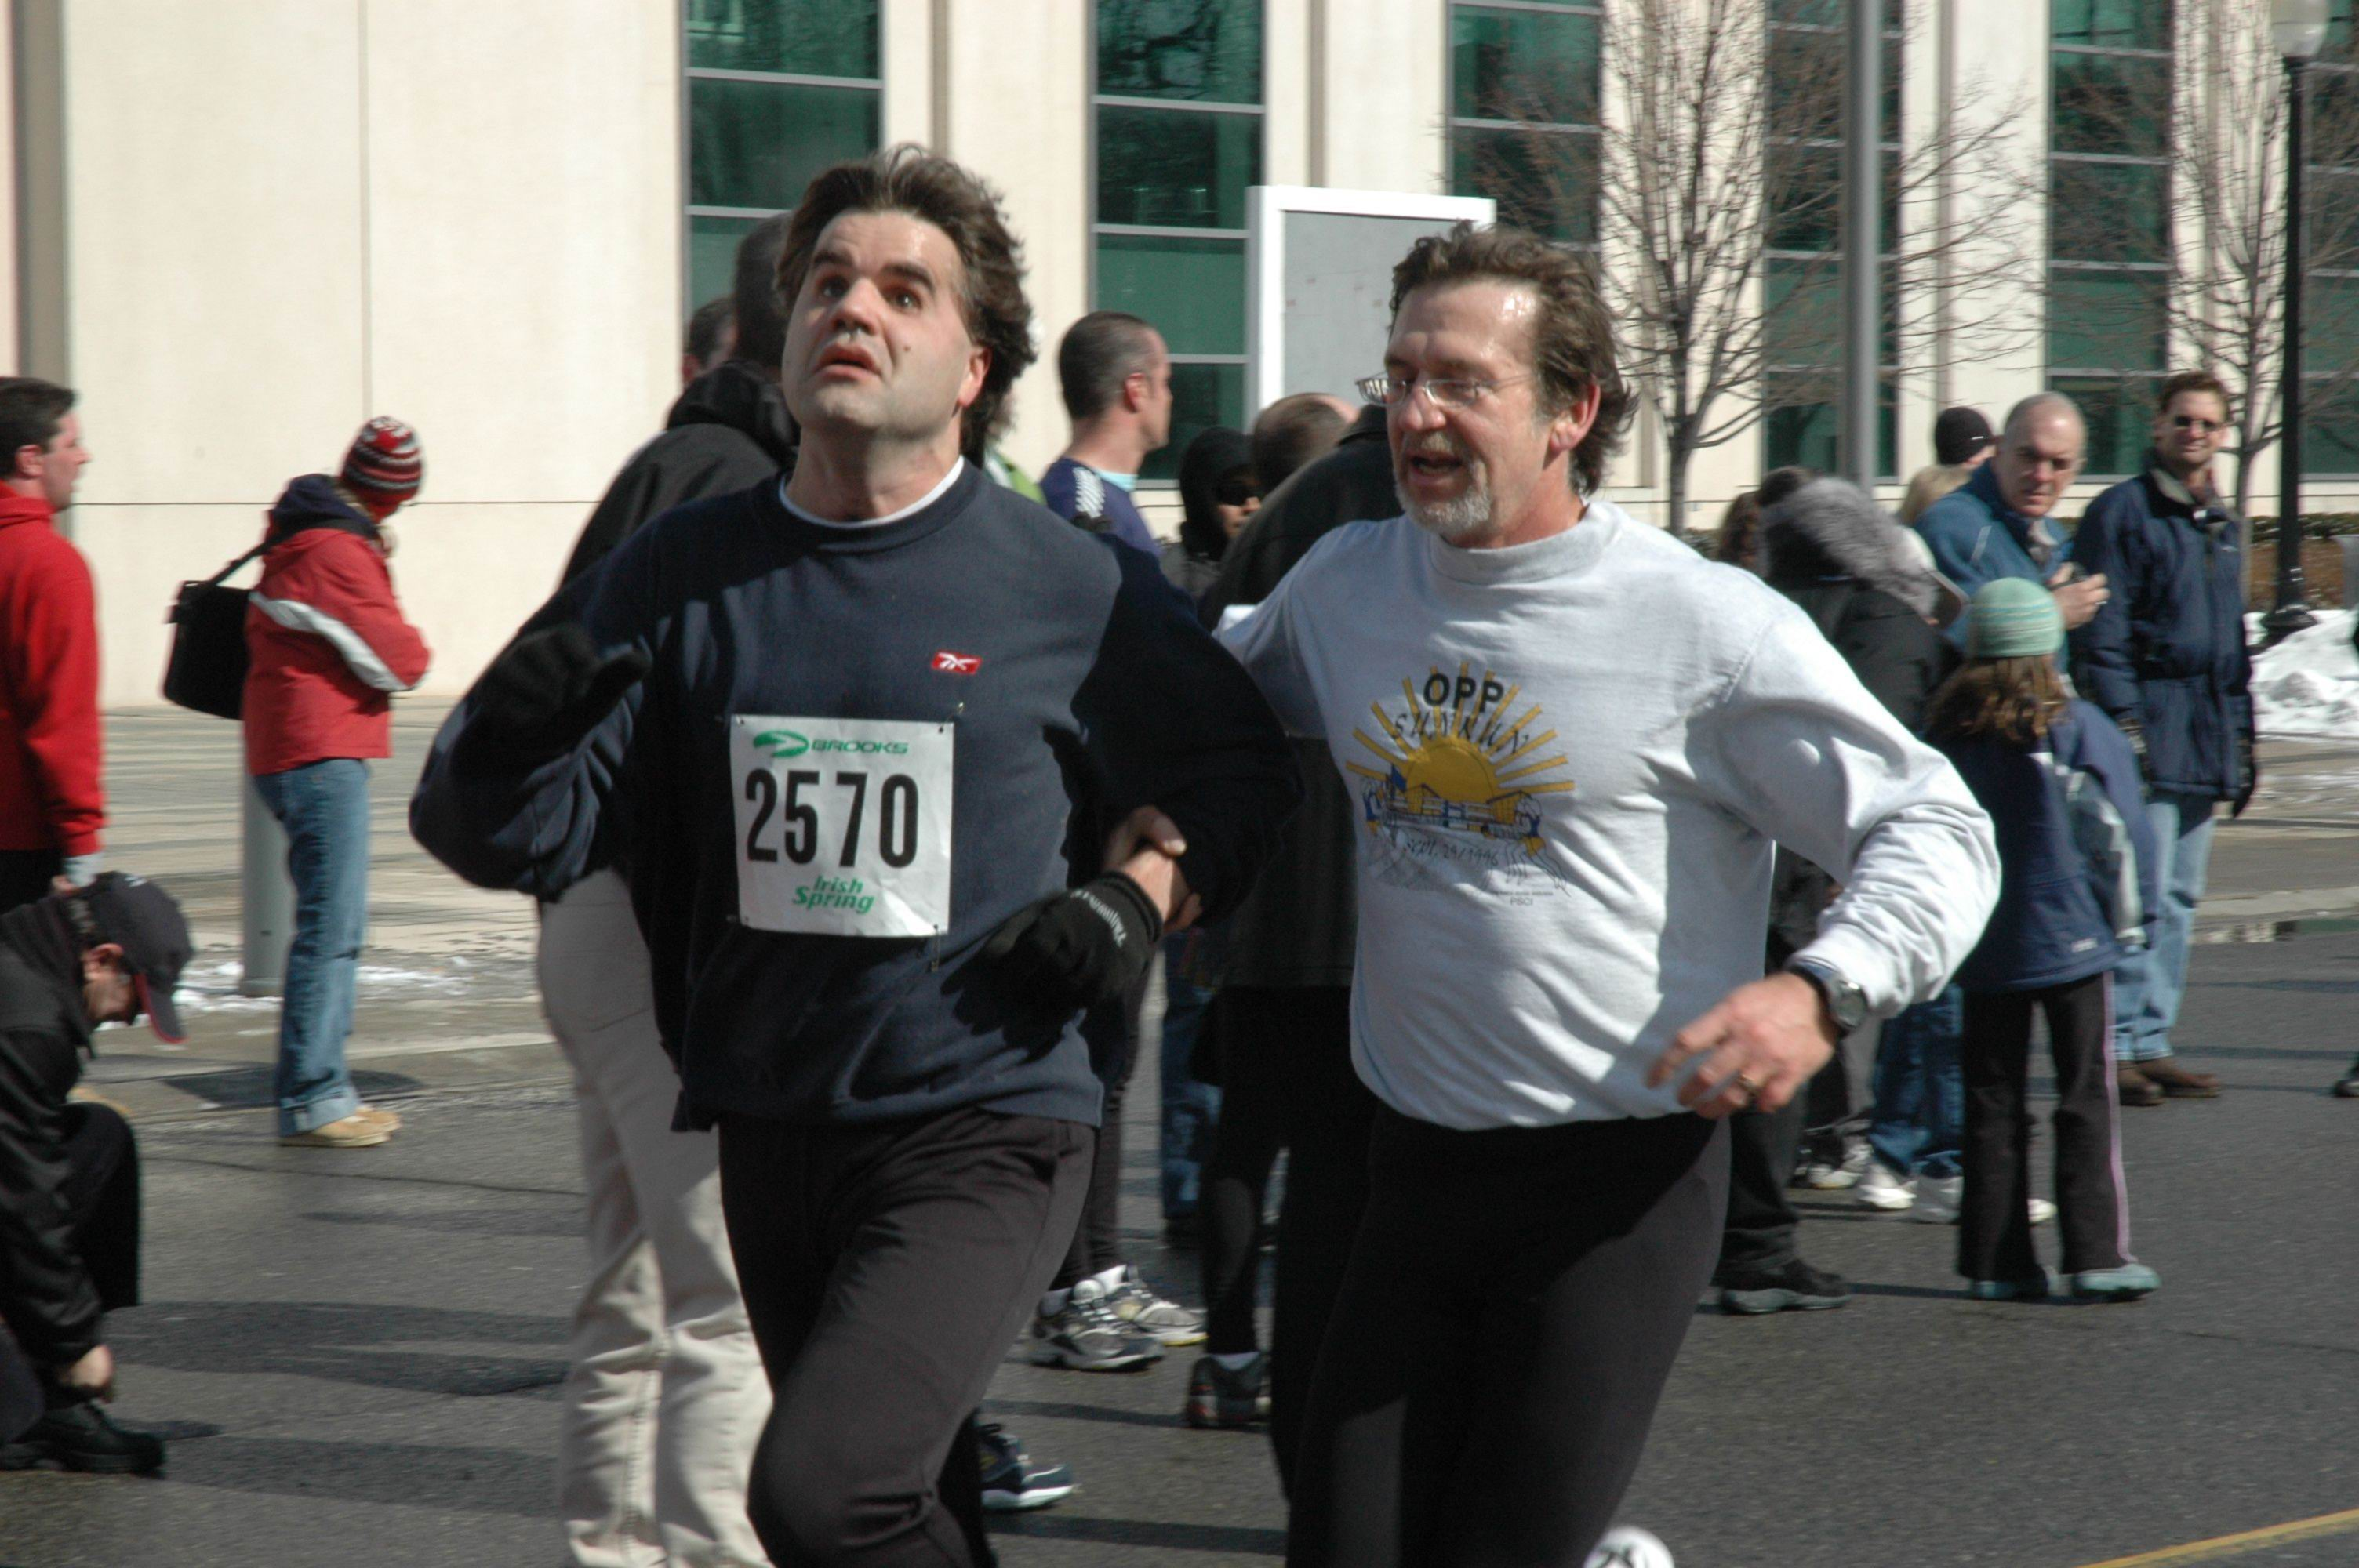 A male runner and a visually impaired runner participating in a marathon run